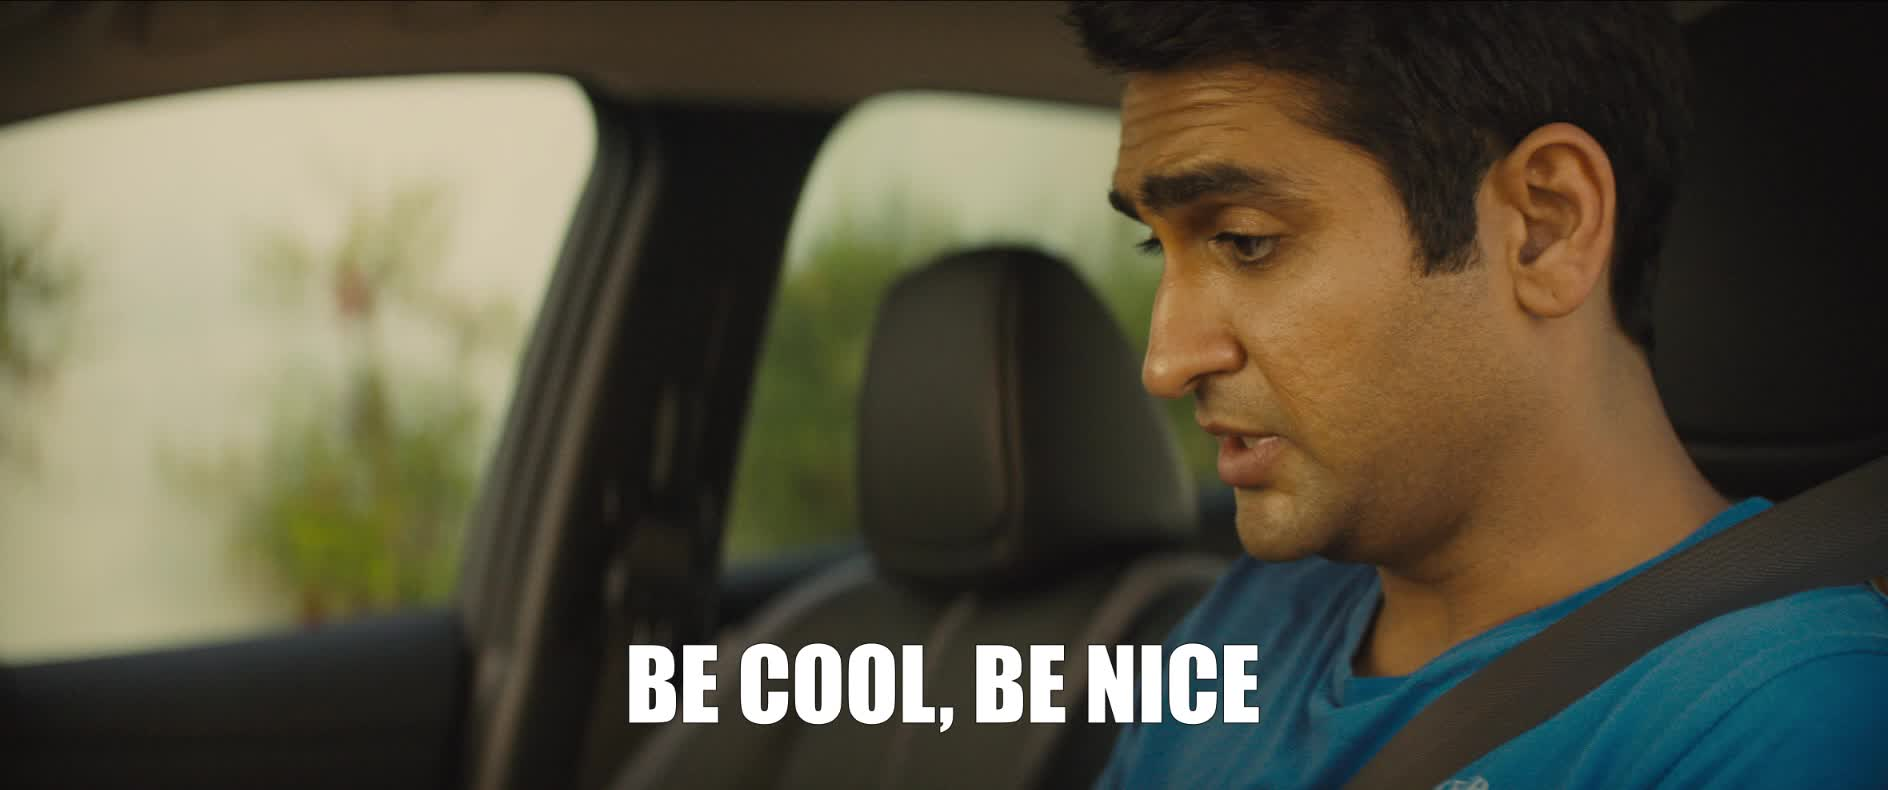 cool, kumail nanjiani, nervous, nice, stuber, stuber movie, Kumail Nanjiani Be Cool Be Nice GIFs